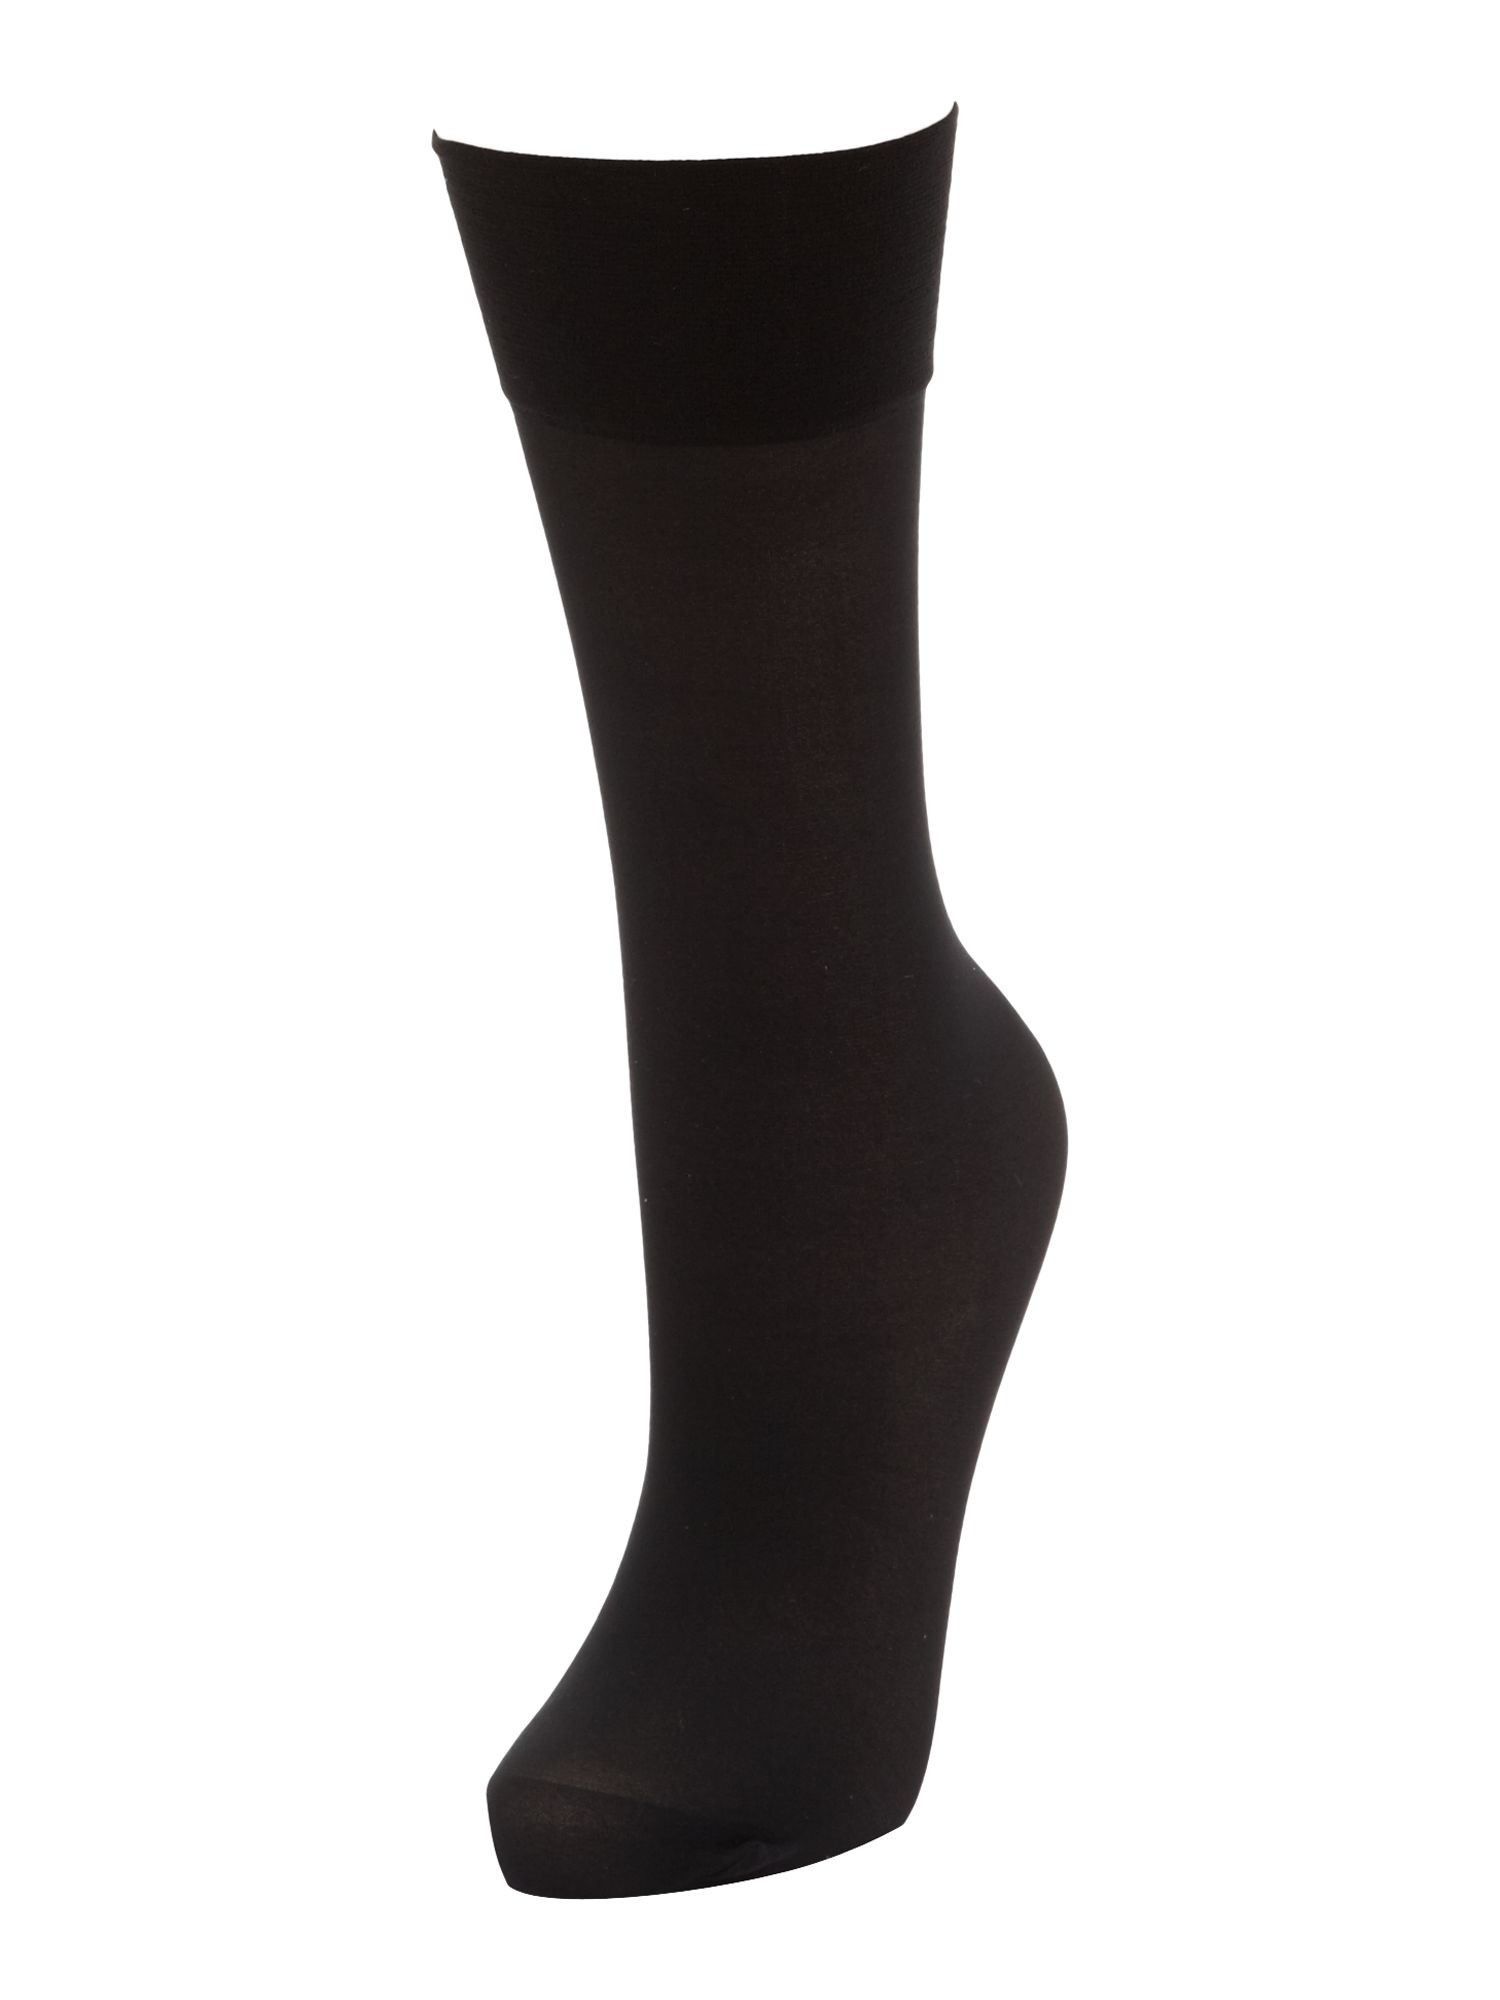 Sheer 15 Denier knee highs 5 pair pack